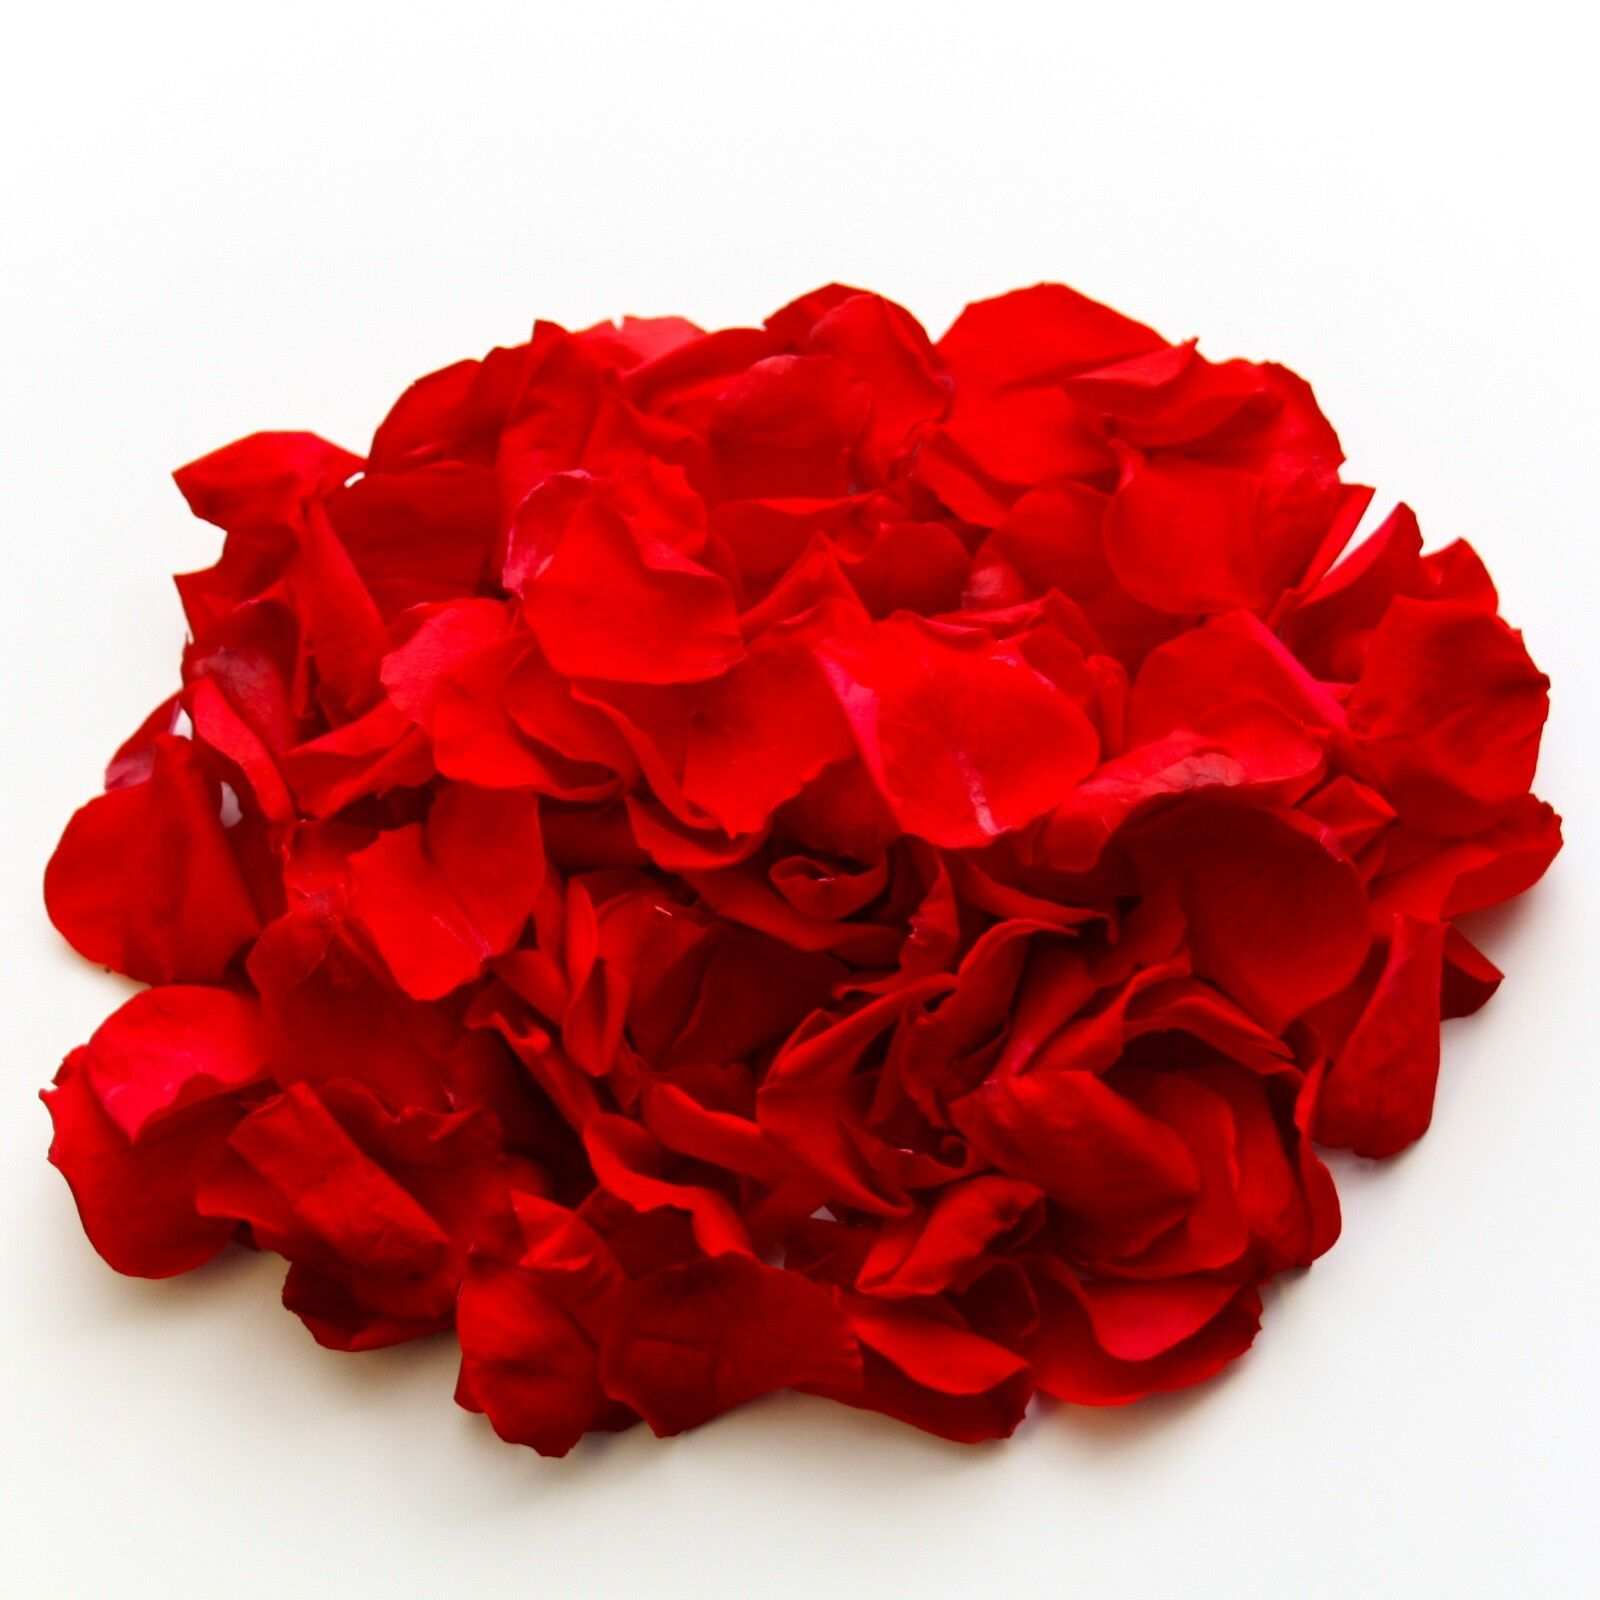 rot rot rot natural biodegradable Rosa petals for wedding confetti   decoration 67d02c